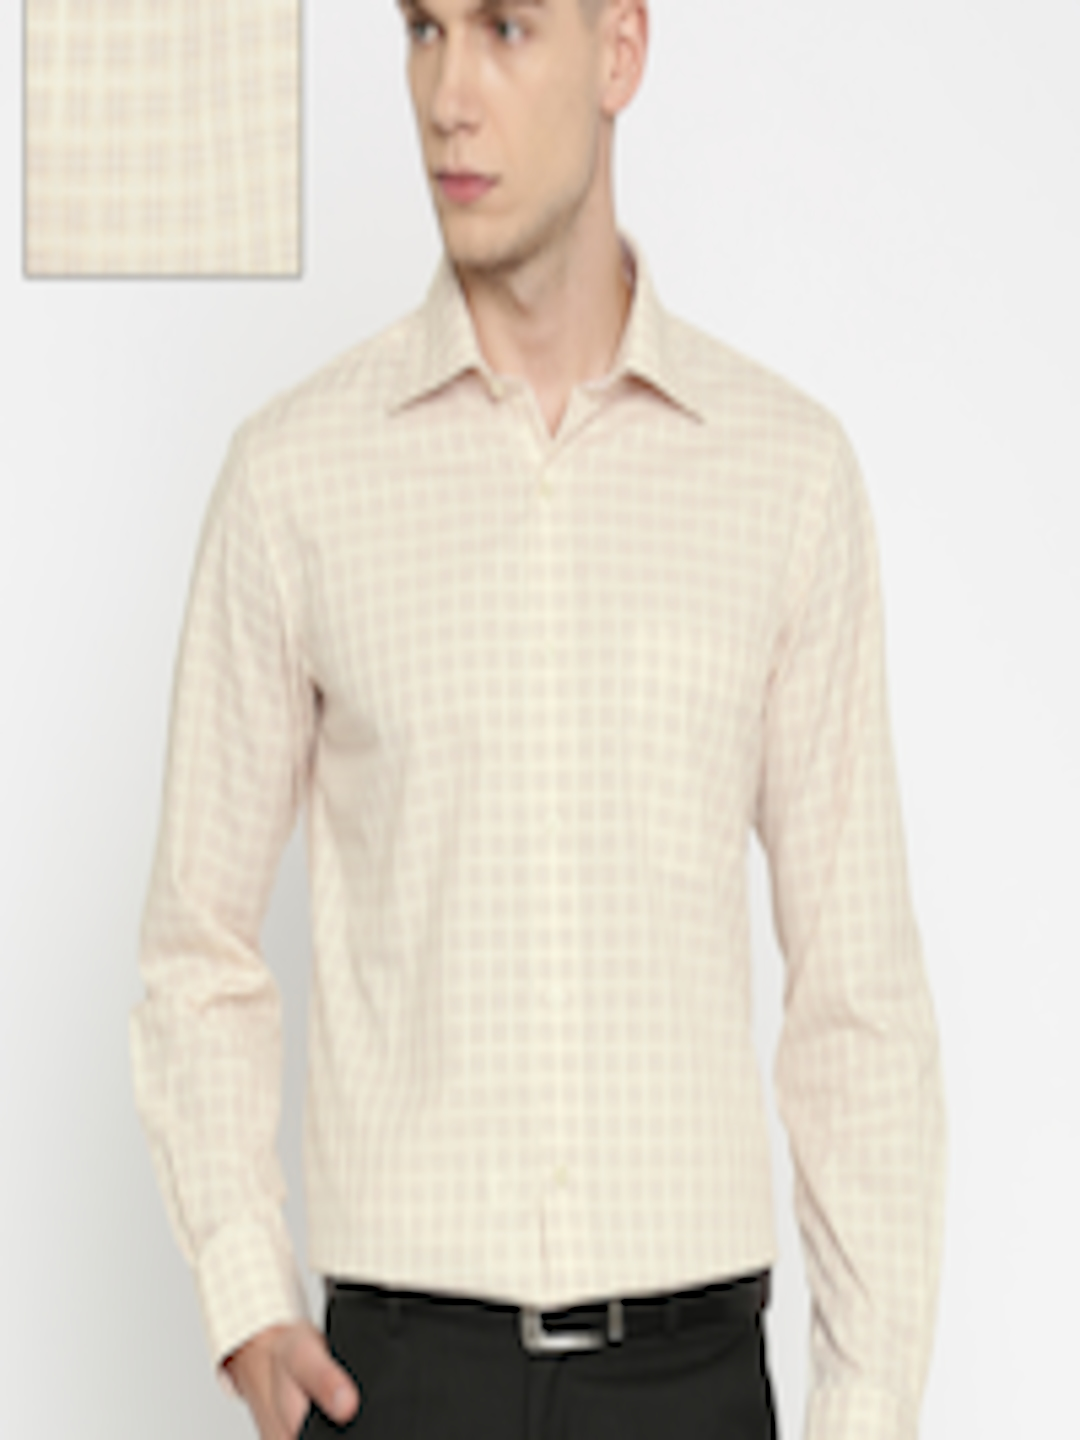 Arrow Fitted White Dress Shirts